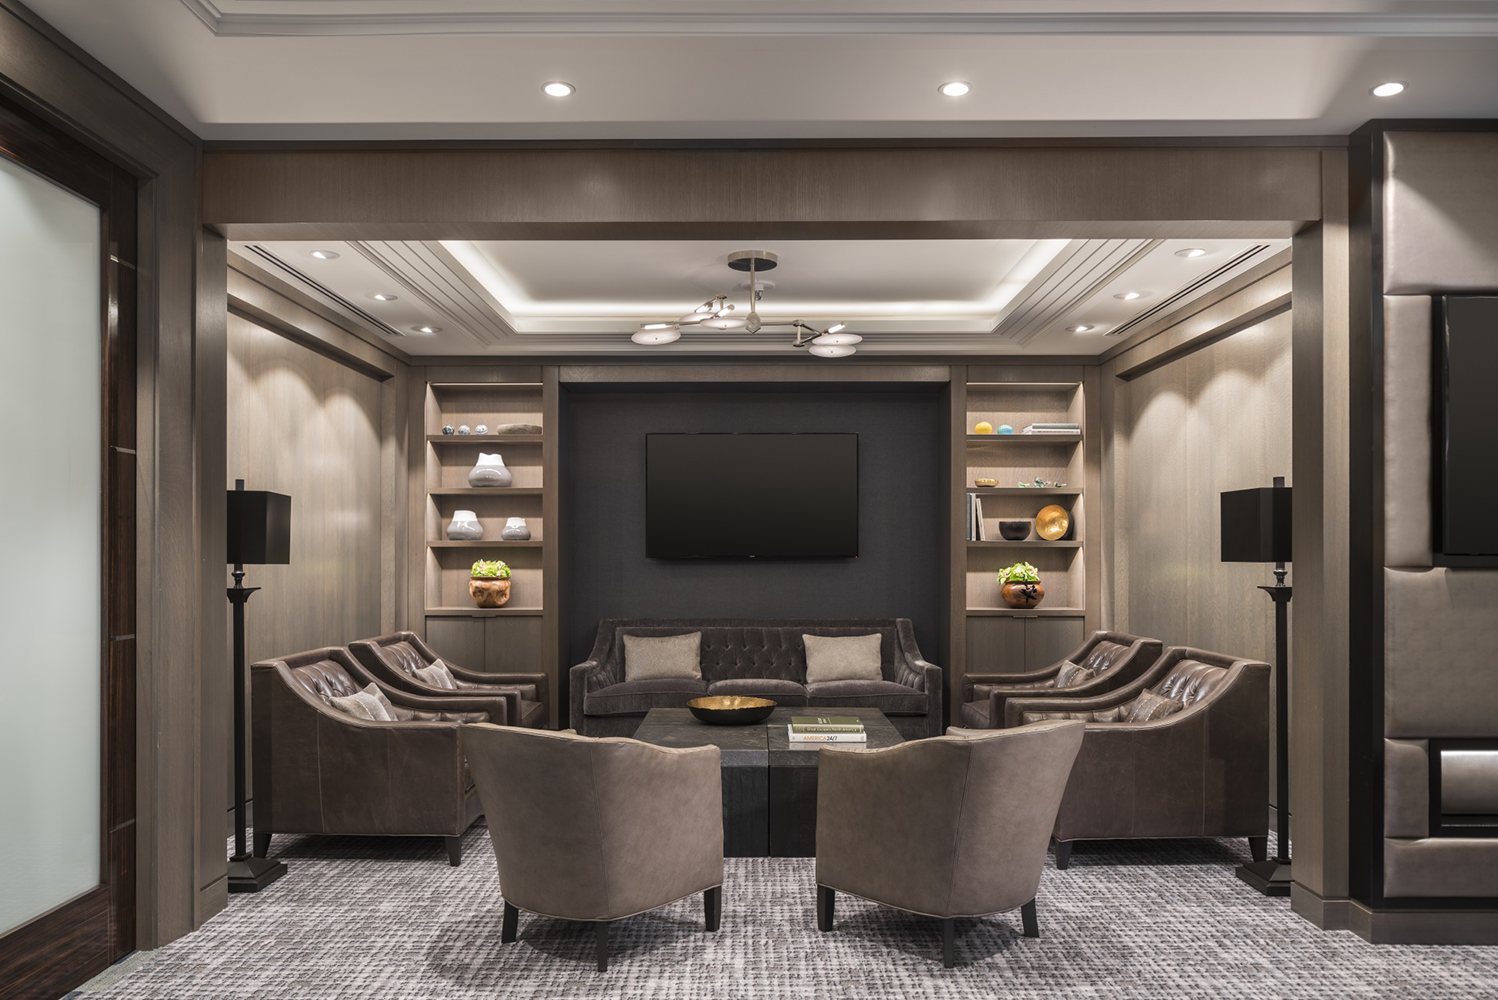 A fully redesigned new meeting space has meeting-friendly interiors and access to the LINKS.